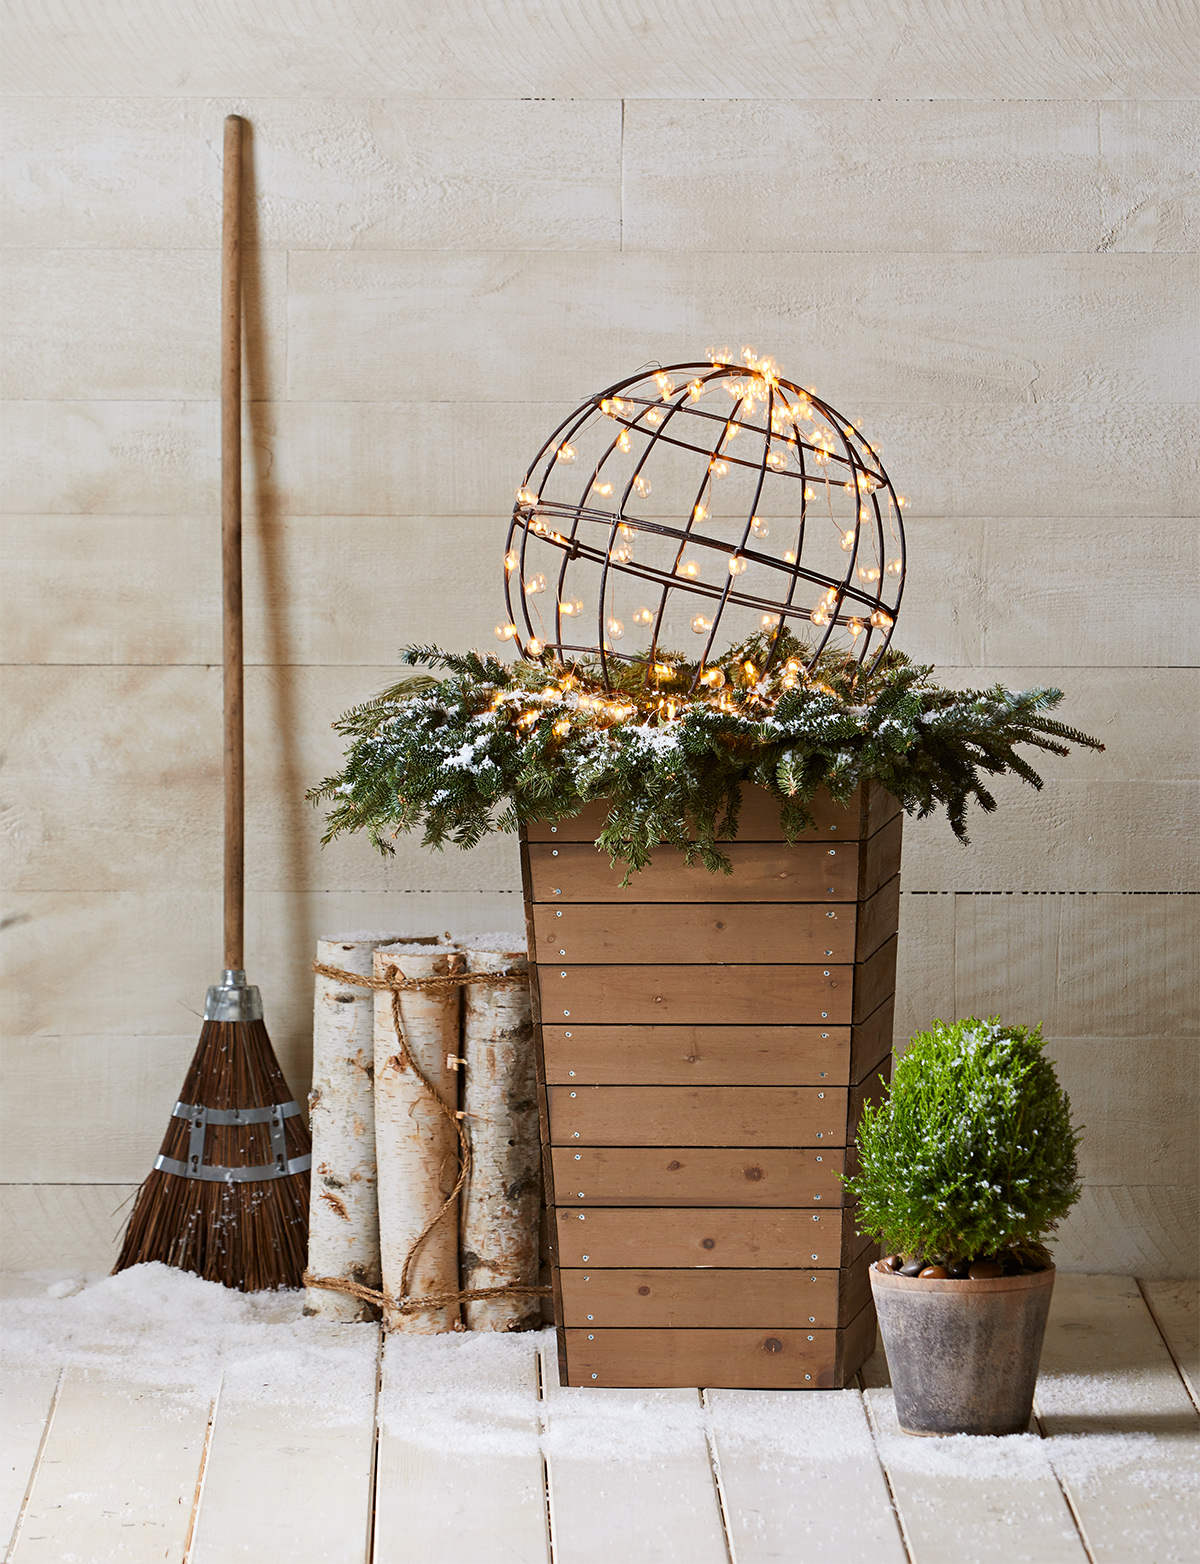 wreath on planter with string light ball